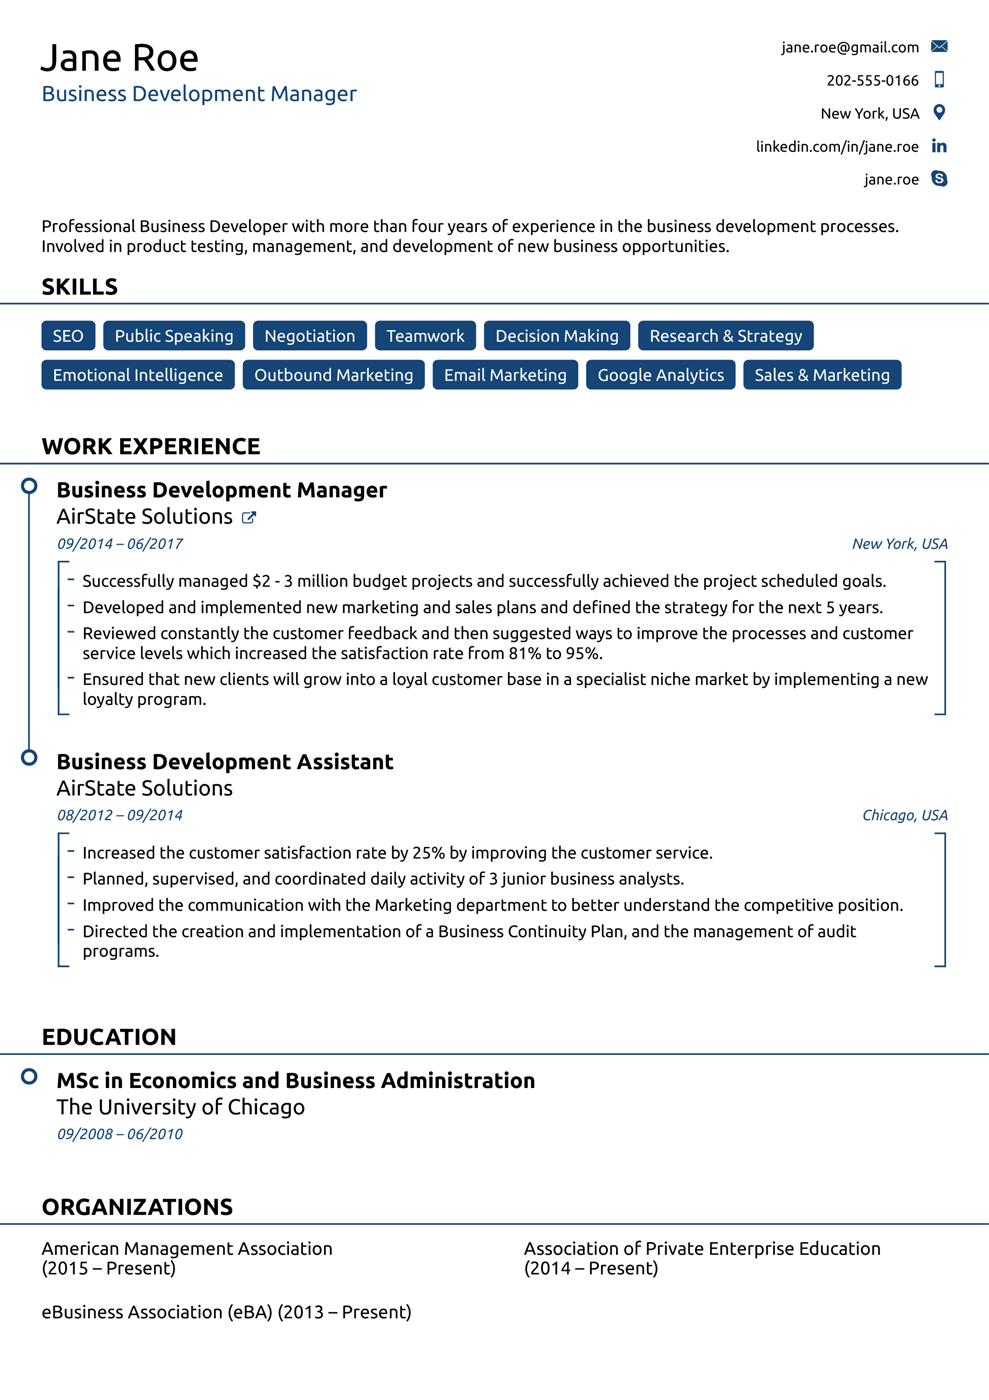 Basic Resume Format.Free Resume Templates For 2019 Download Now